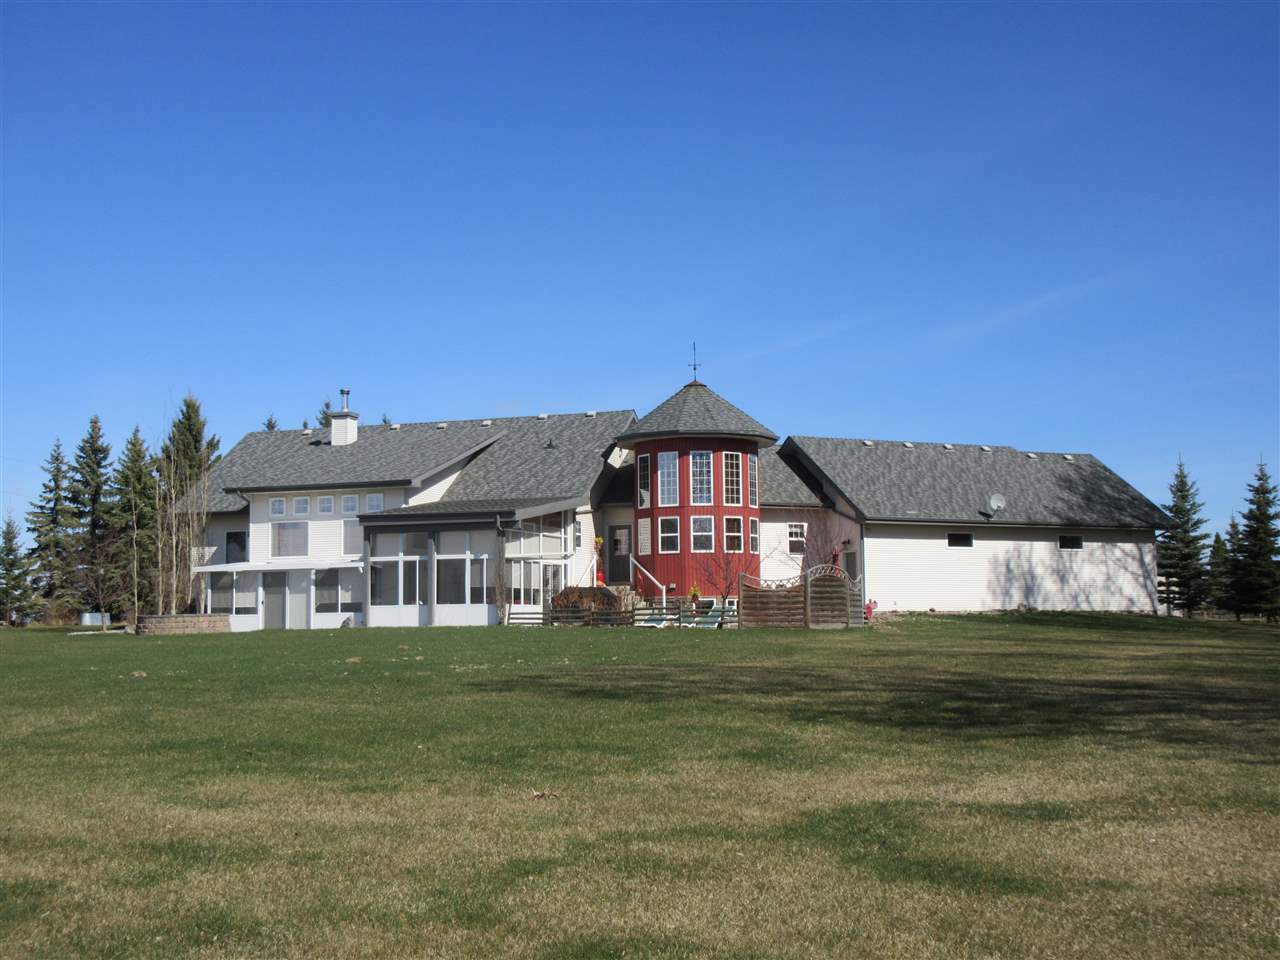 Main Photo: 24315 TWP RD 552: Rural Sturgeon County House for sale : MLS®# E4187746